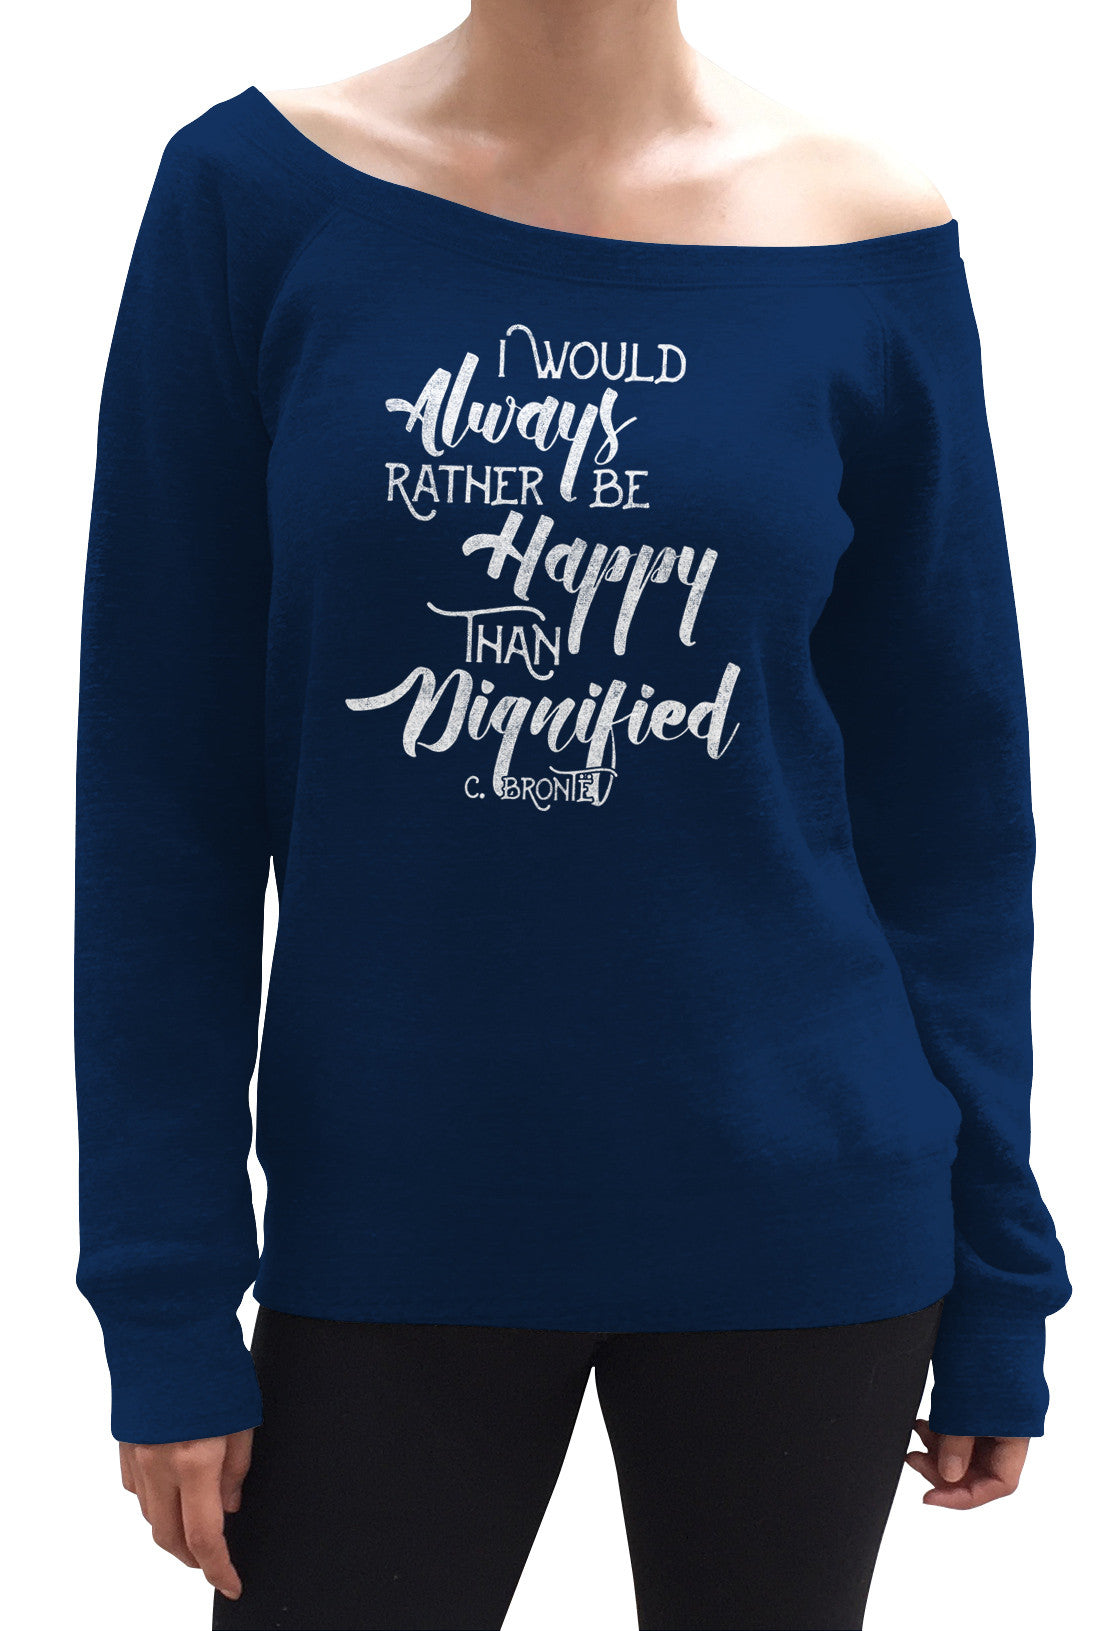 Women's I Would Always Rather Be Happy Than Dignified Scoop Neck Fleece